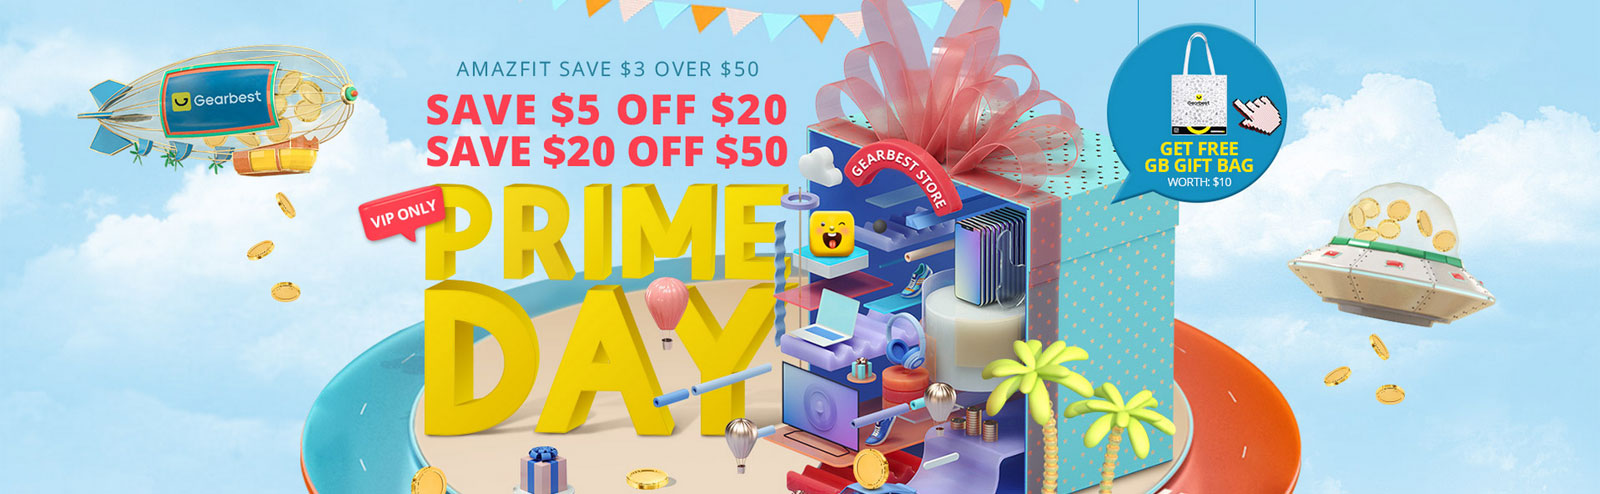 Xiaomi Mi 9T coupons and other smartphone deals during the GearBest Prime Day Special